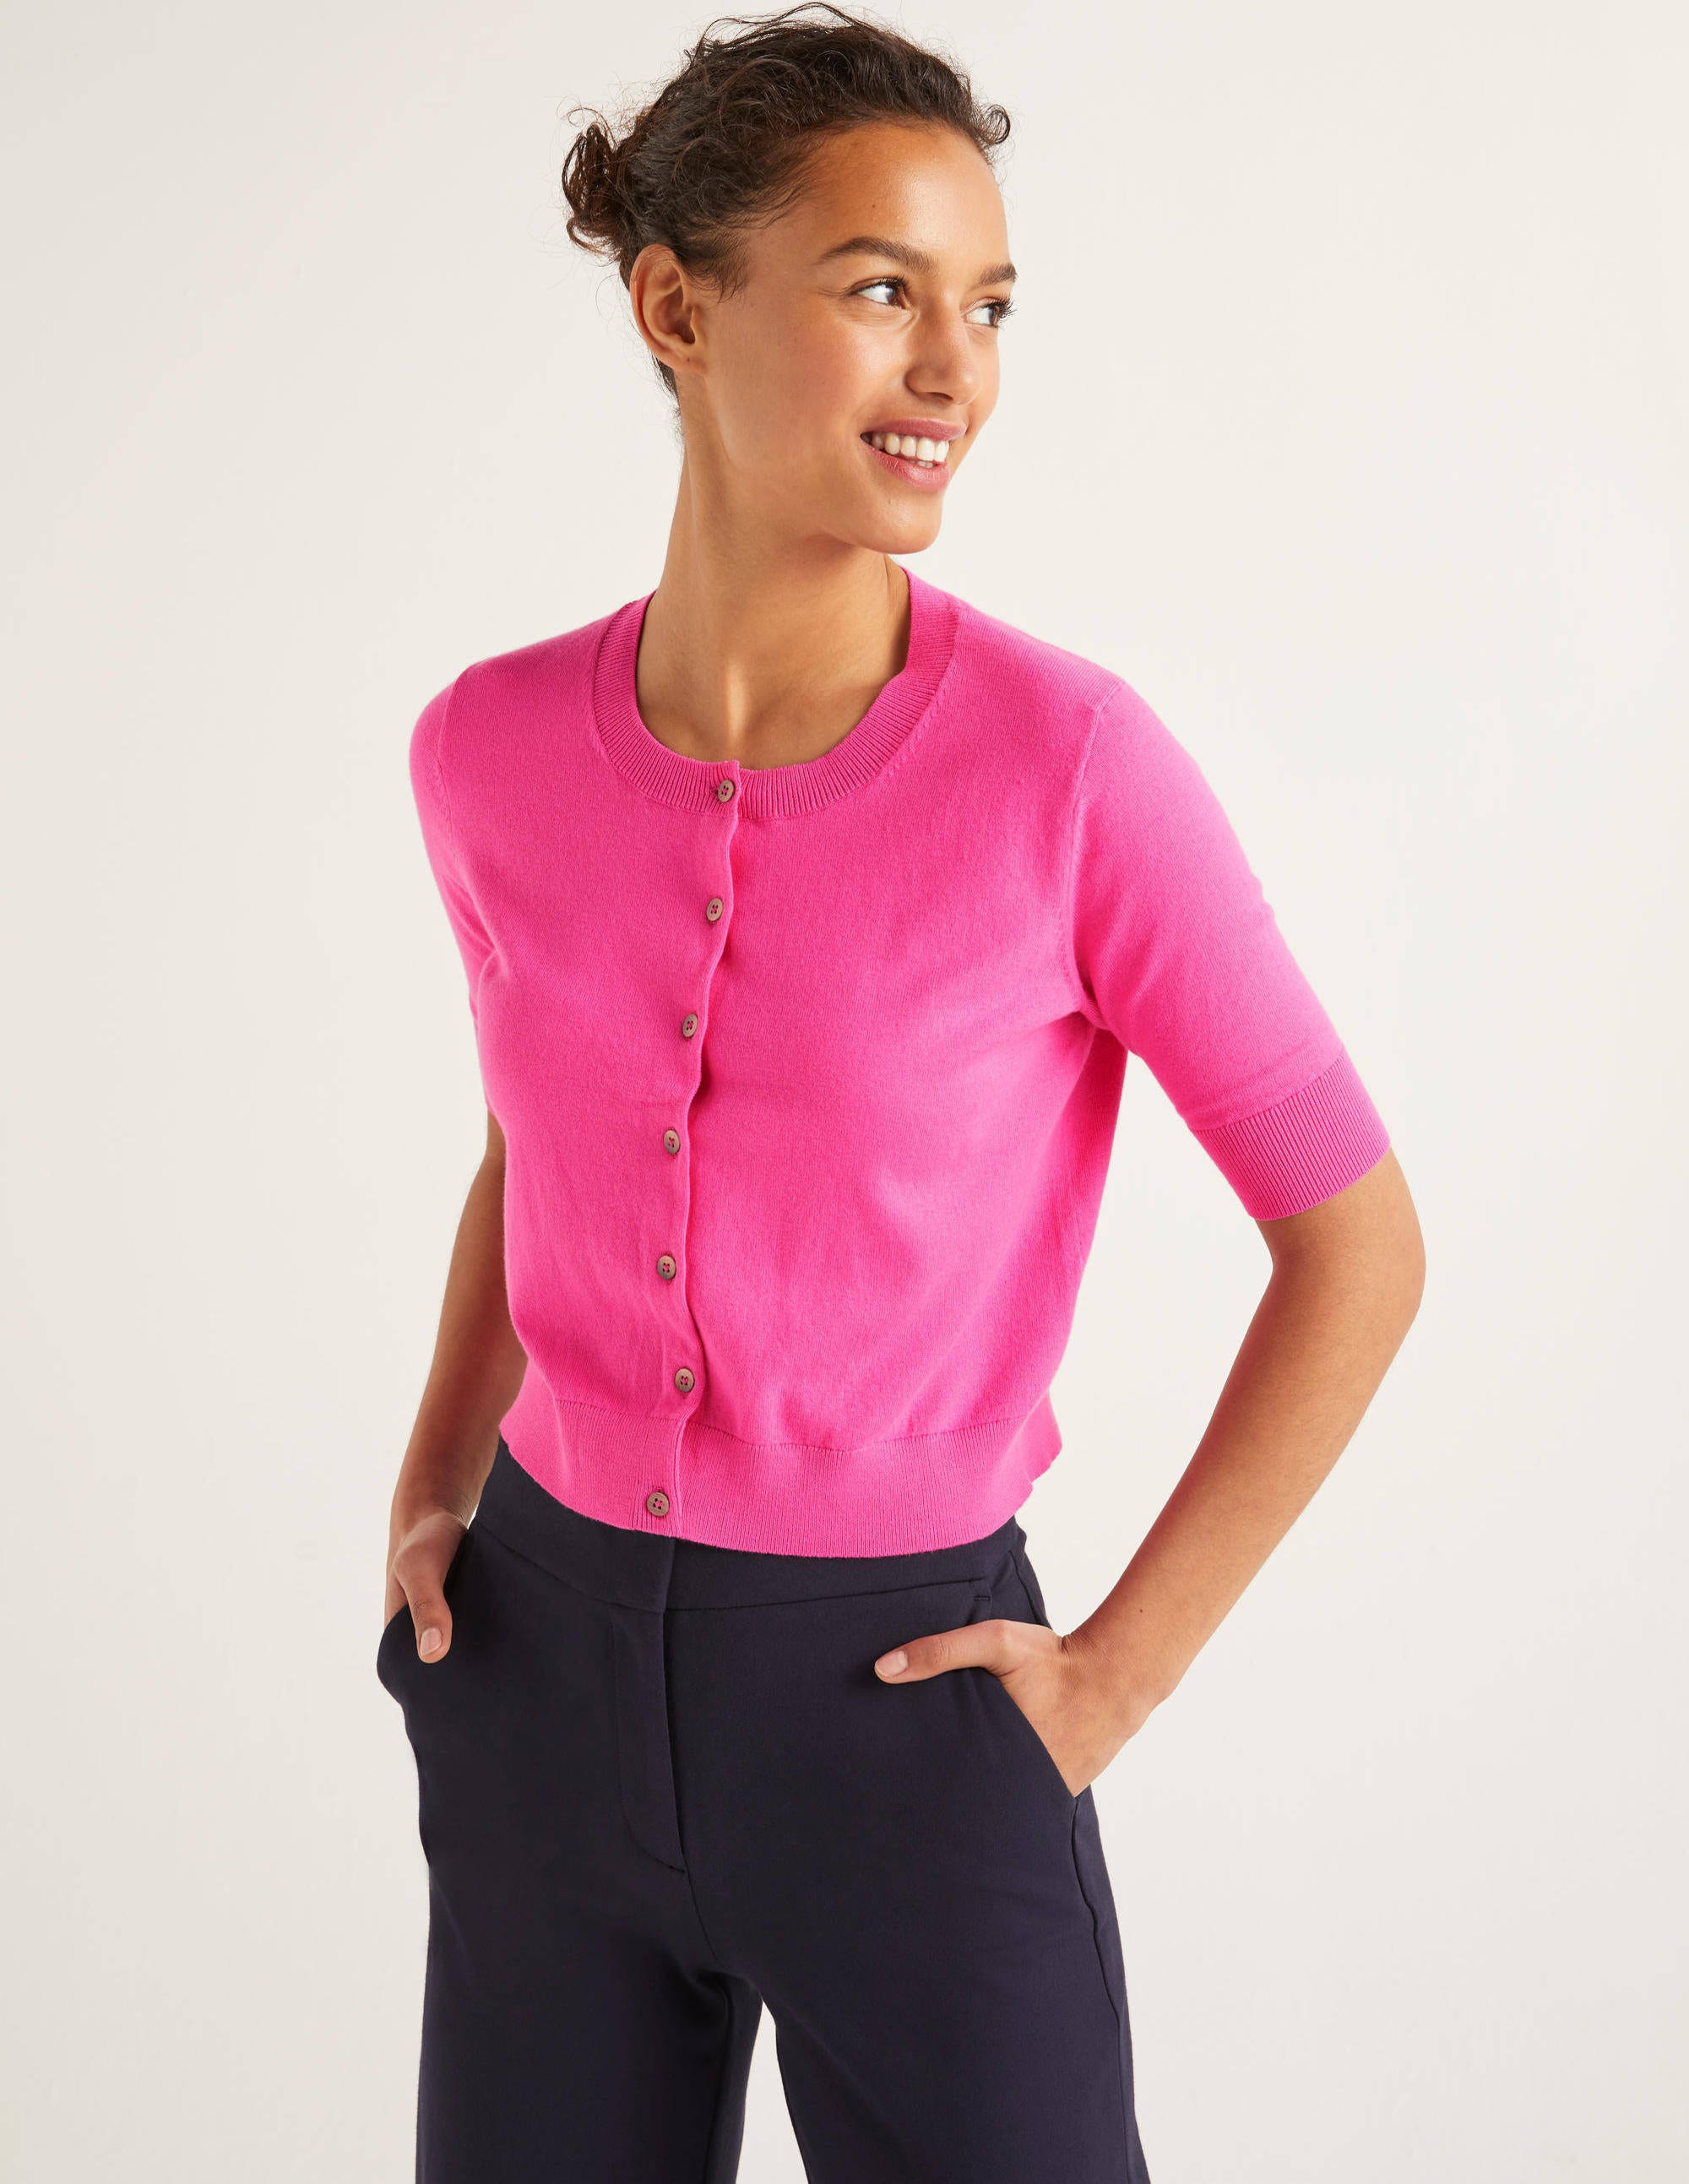 Boden Favourite Crop Cardigan - Pop Pansy